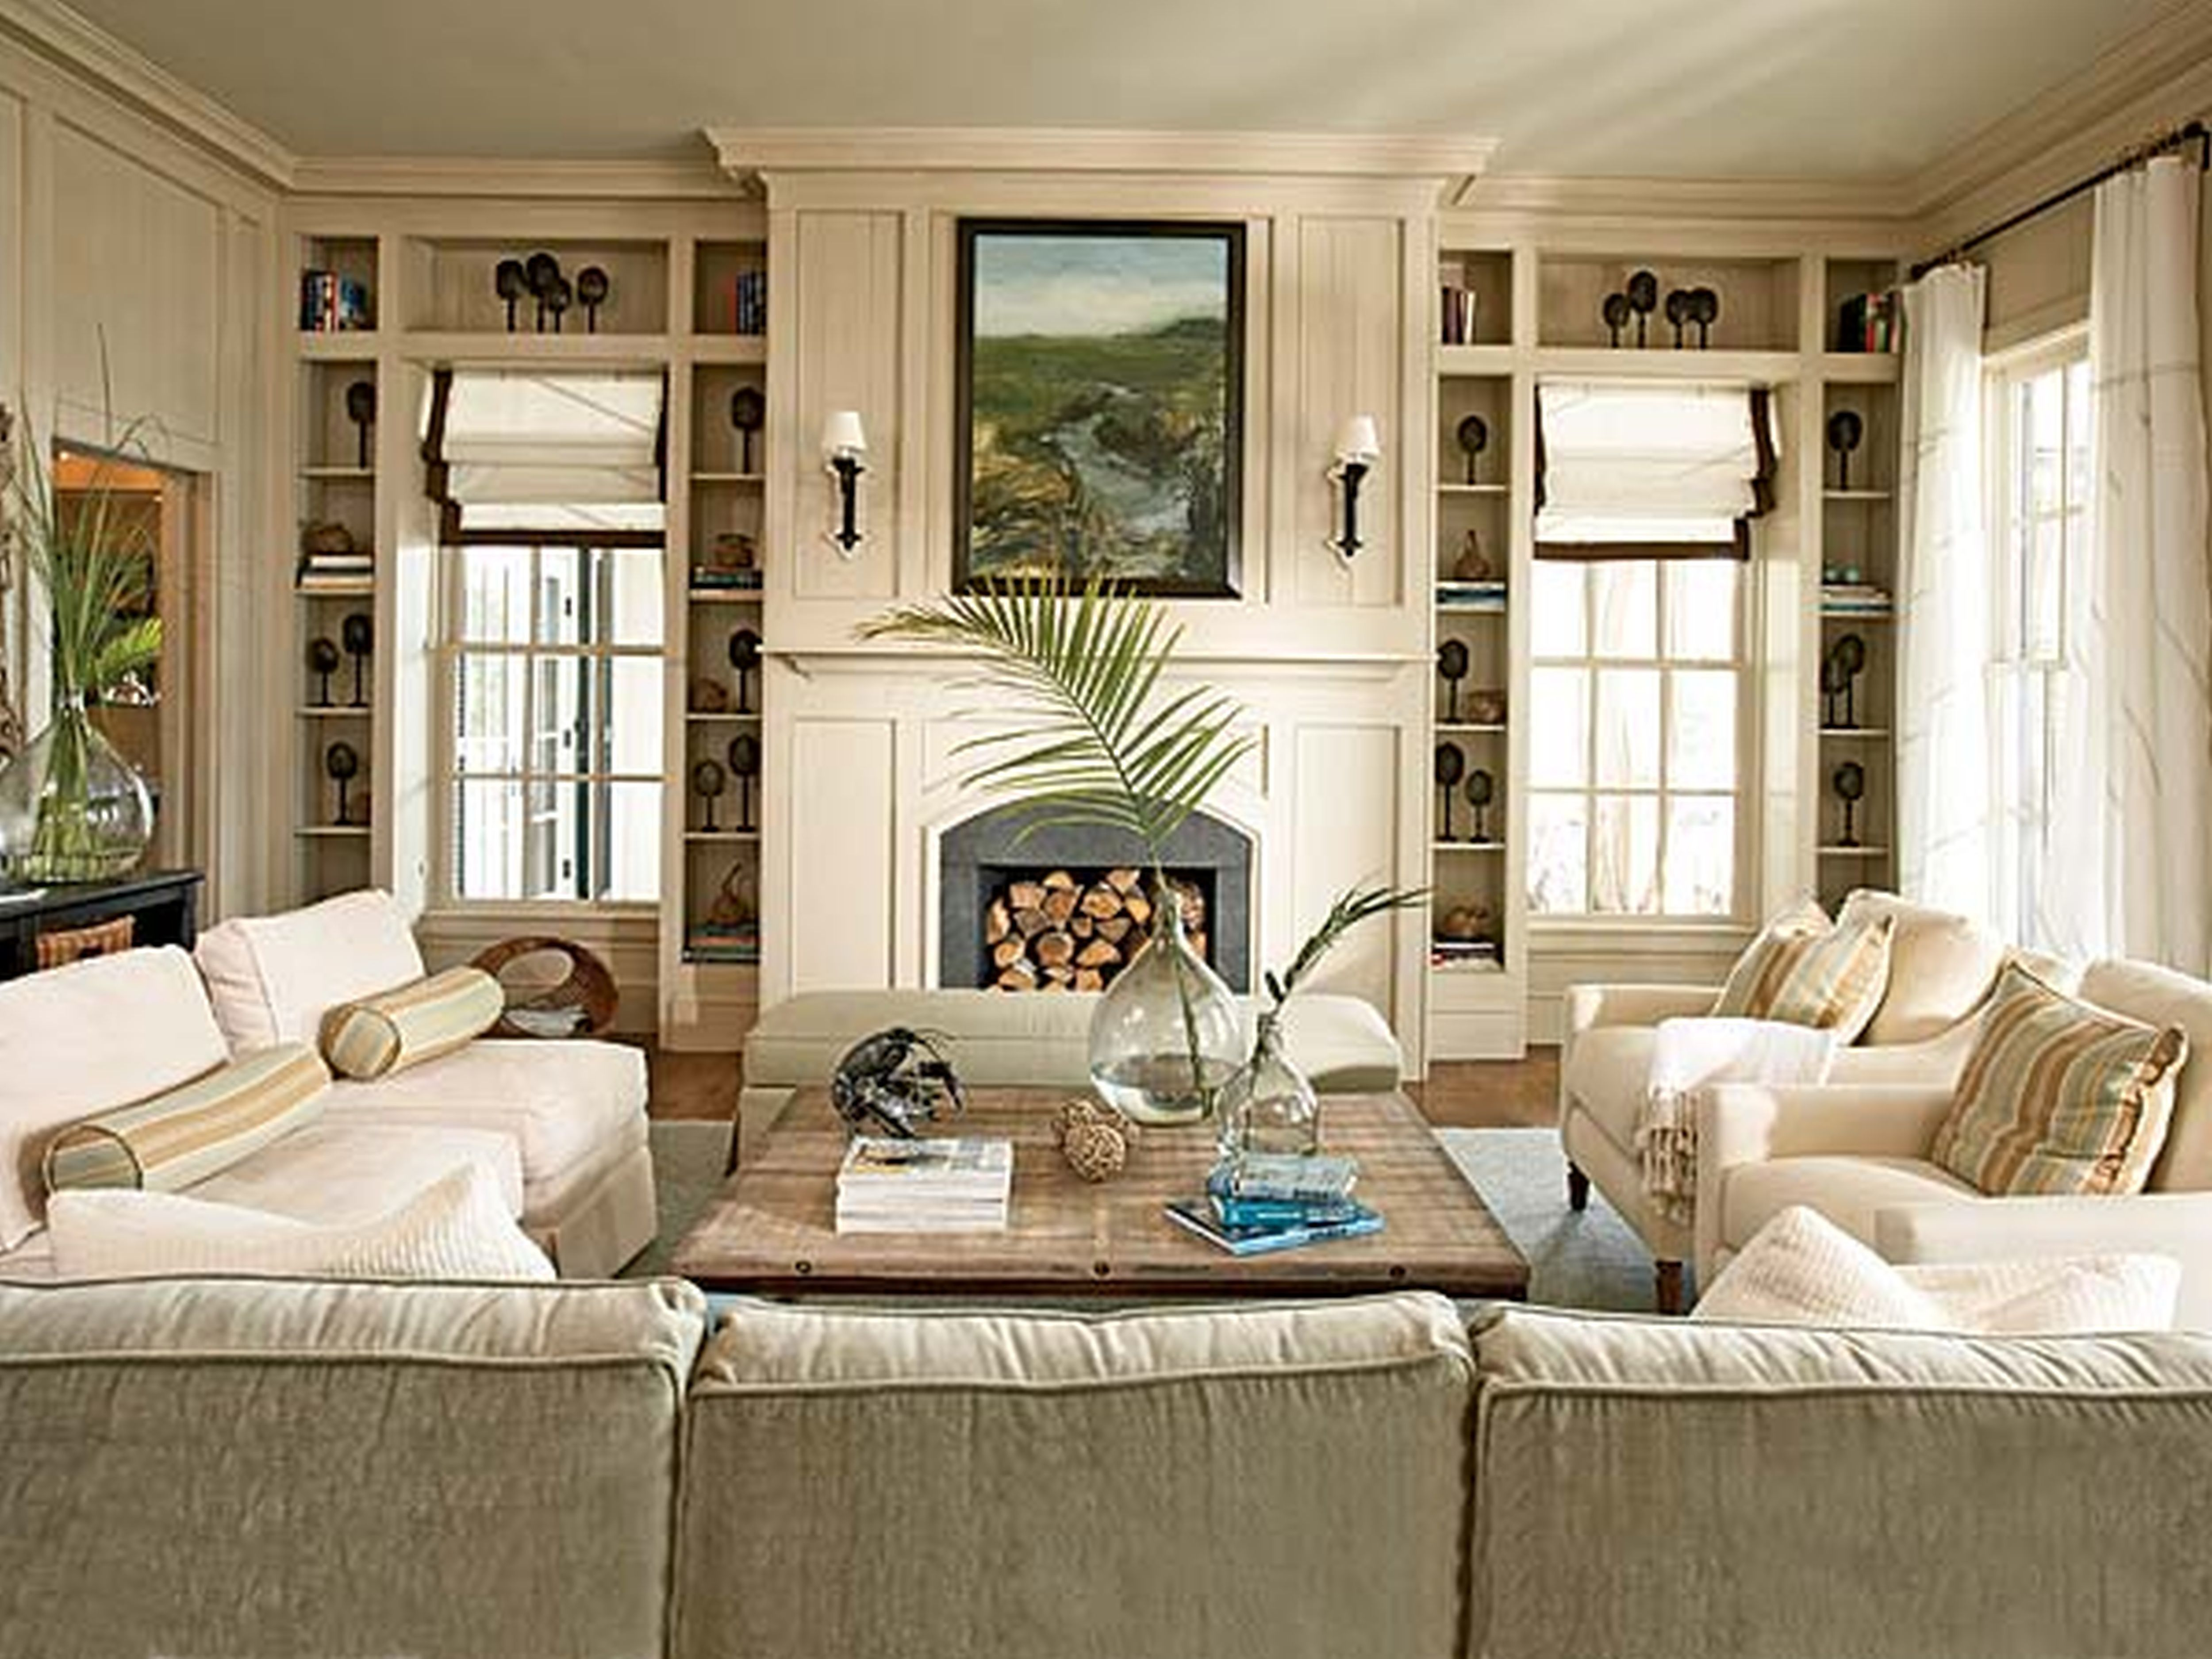 Best Decorating Peachy Nautical Living Room Coastal Theme 400 x 300